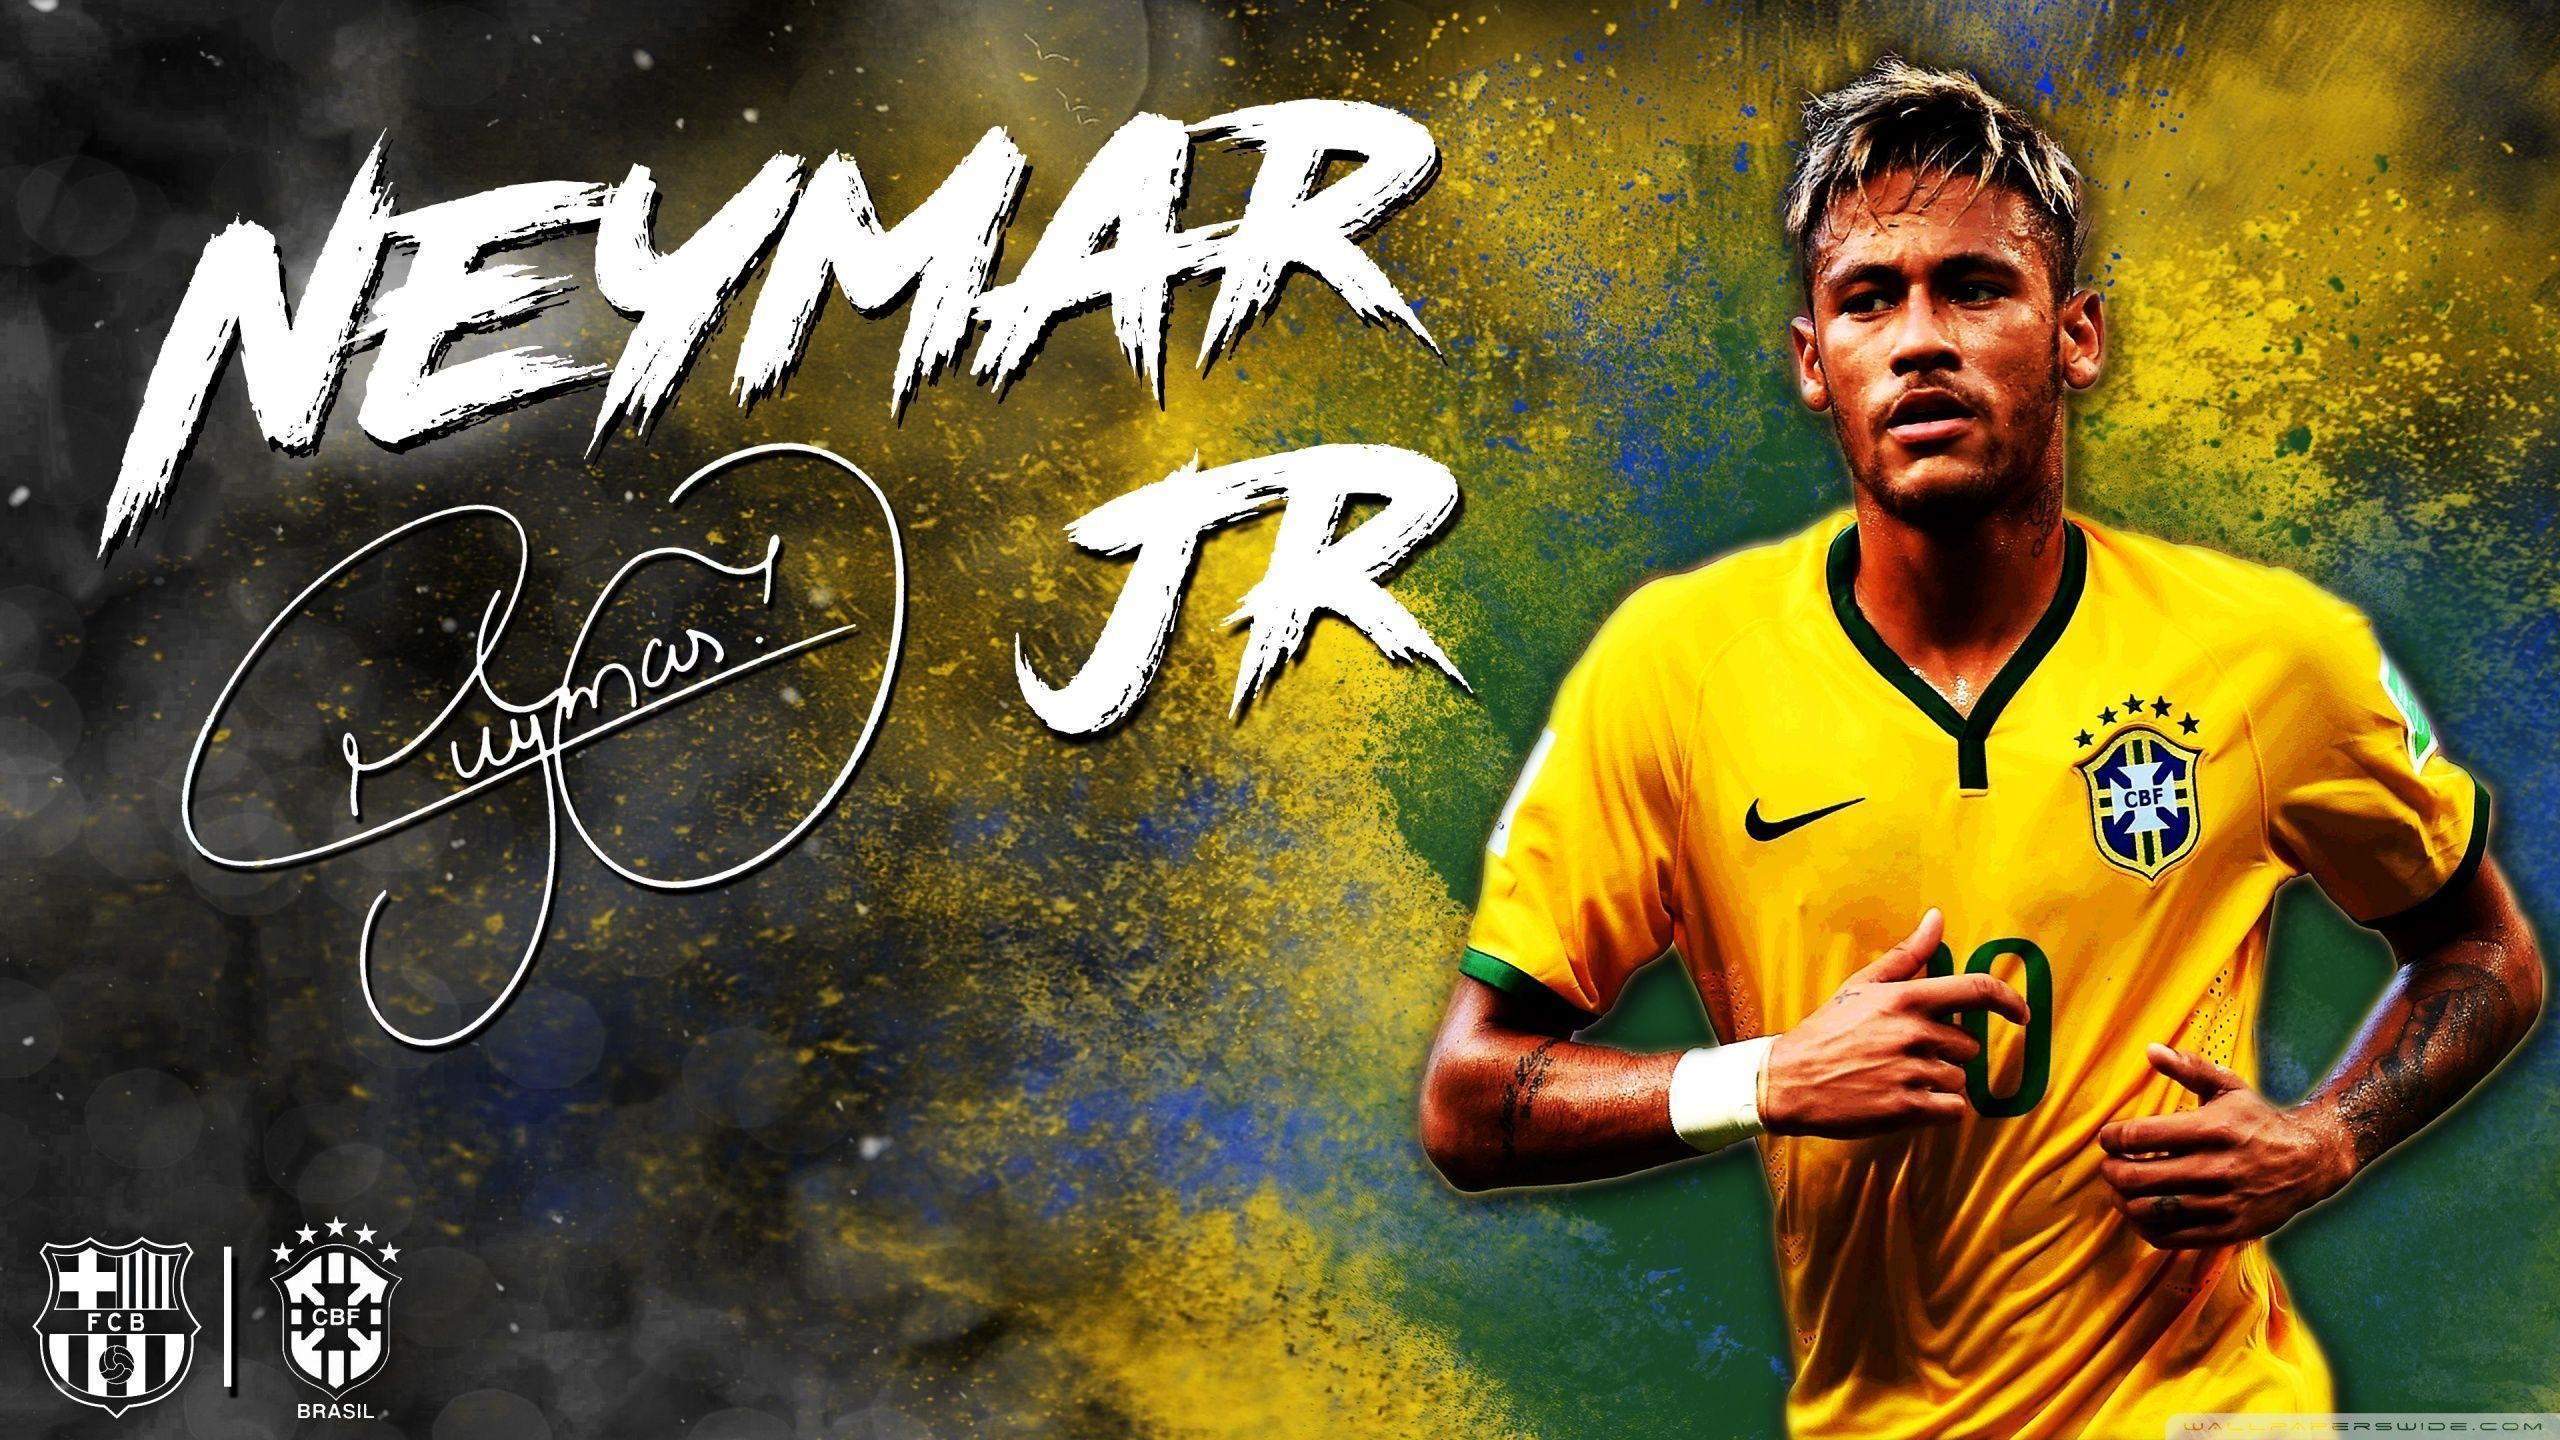 Neymar Jr. Barcelona Brazil HD desktop wallpaper : High Definition ...